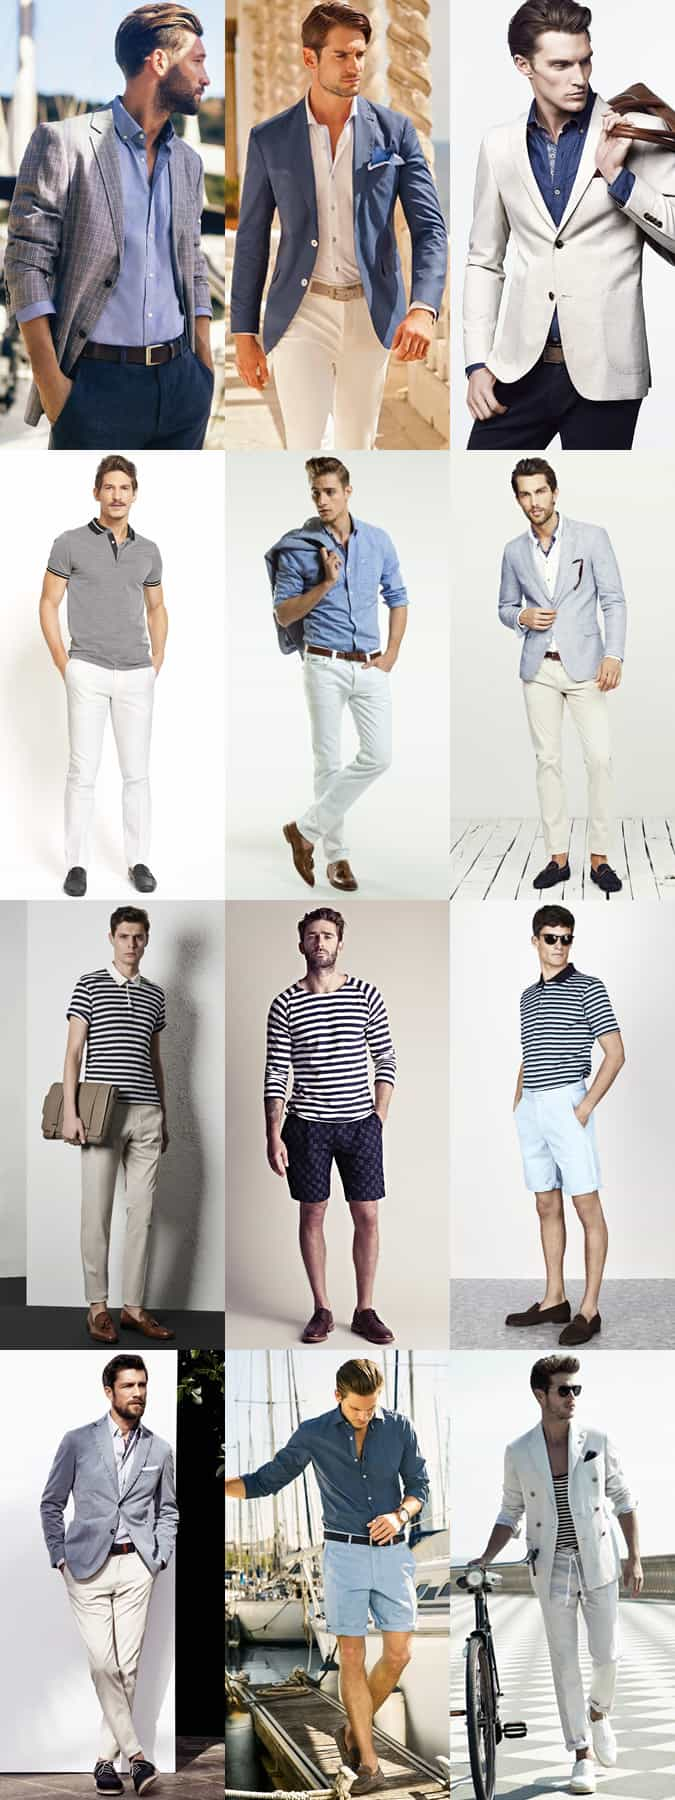 Nice, France - Men's Spring City Break Outfit Inspiration Lookbook